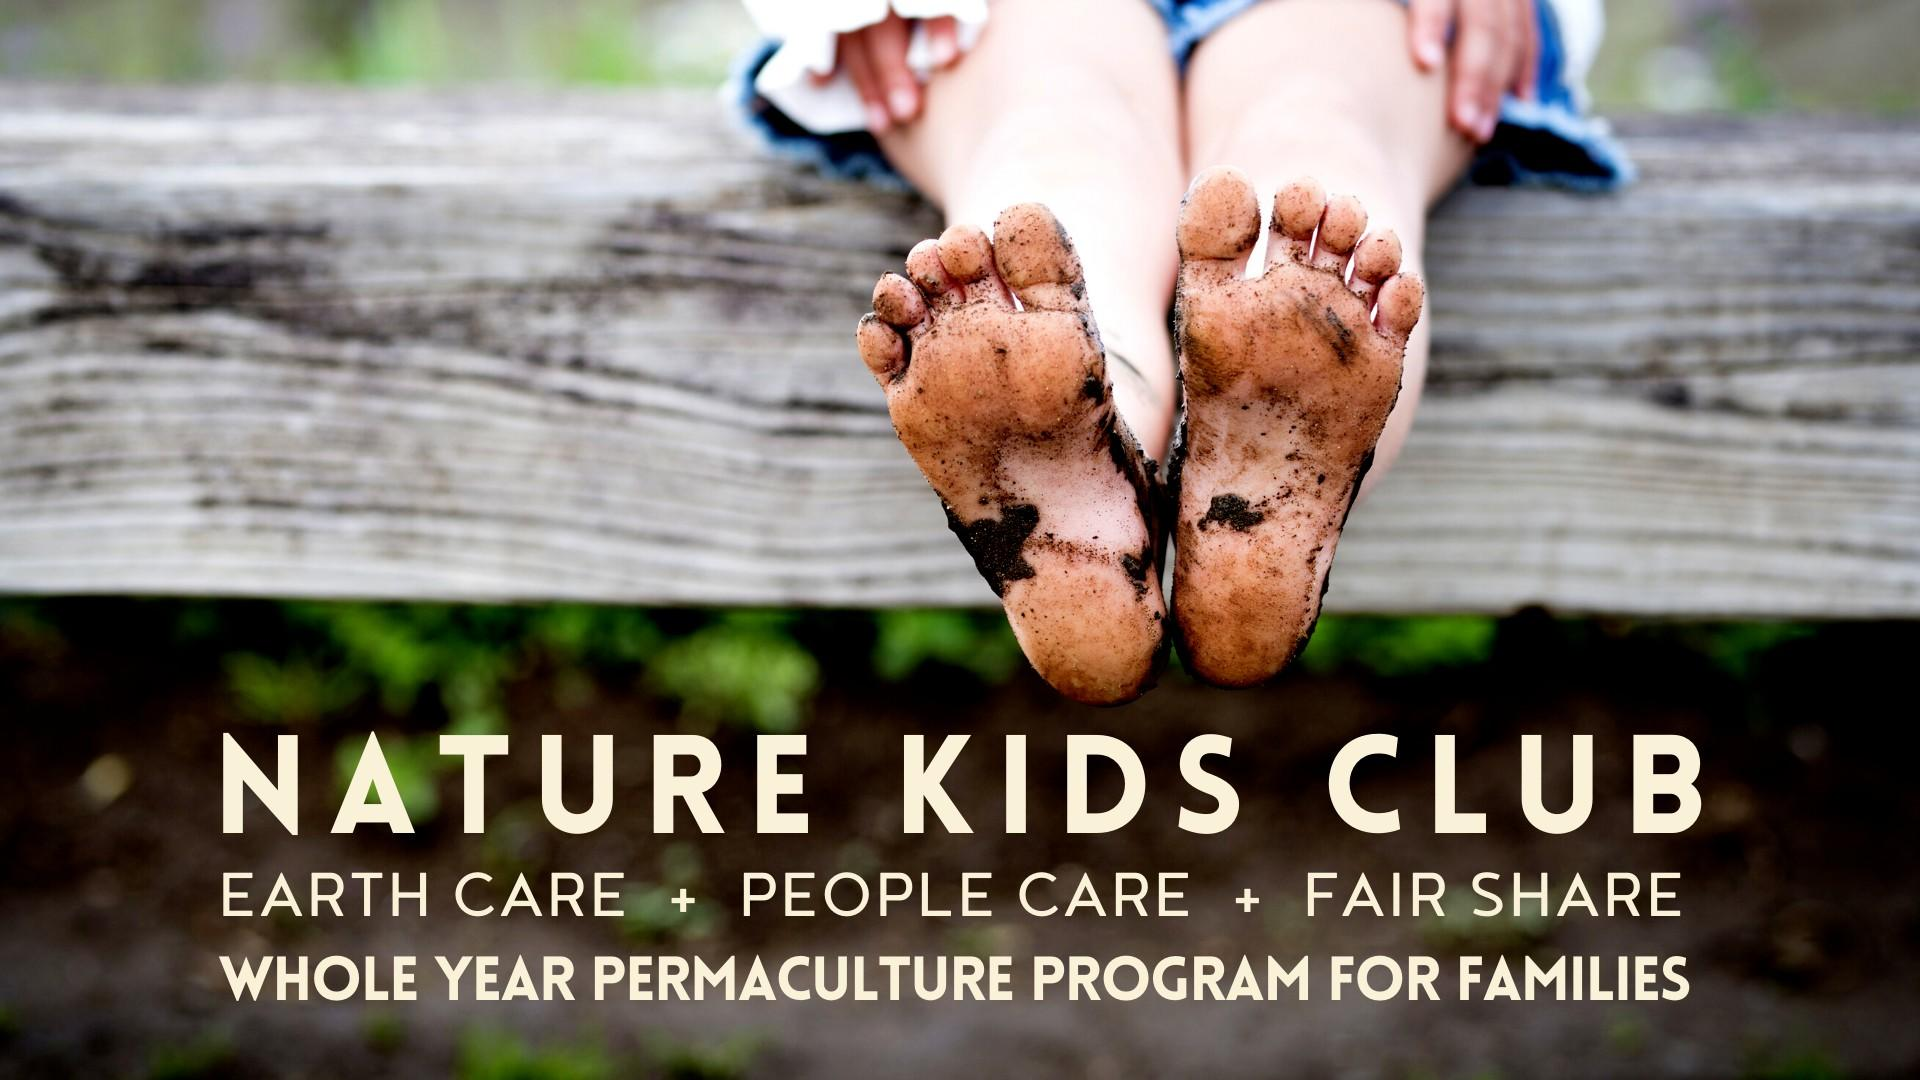 Permaculture Program for Families